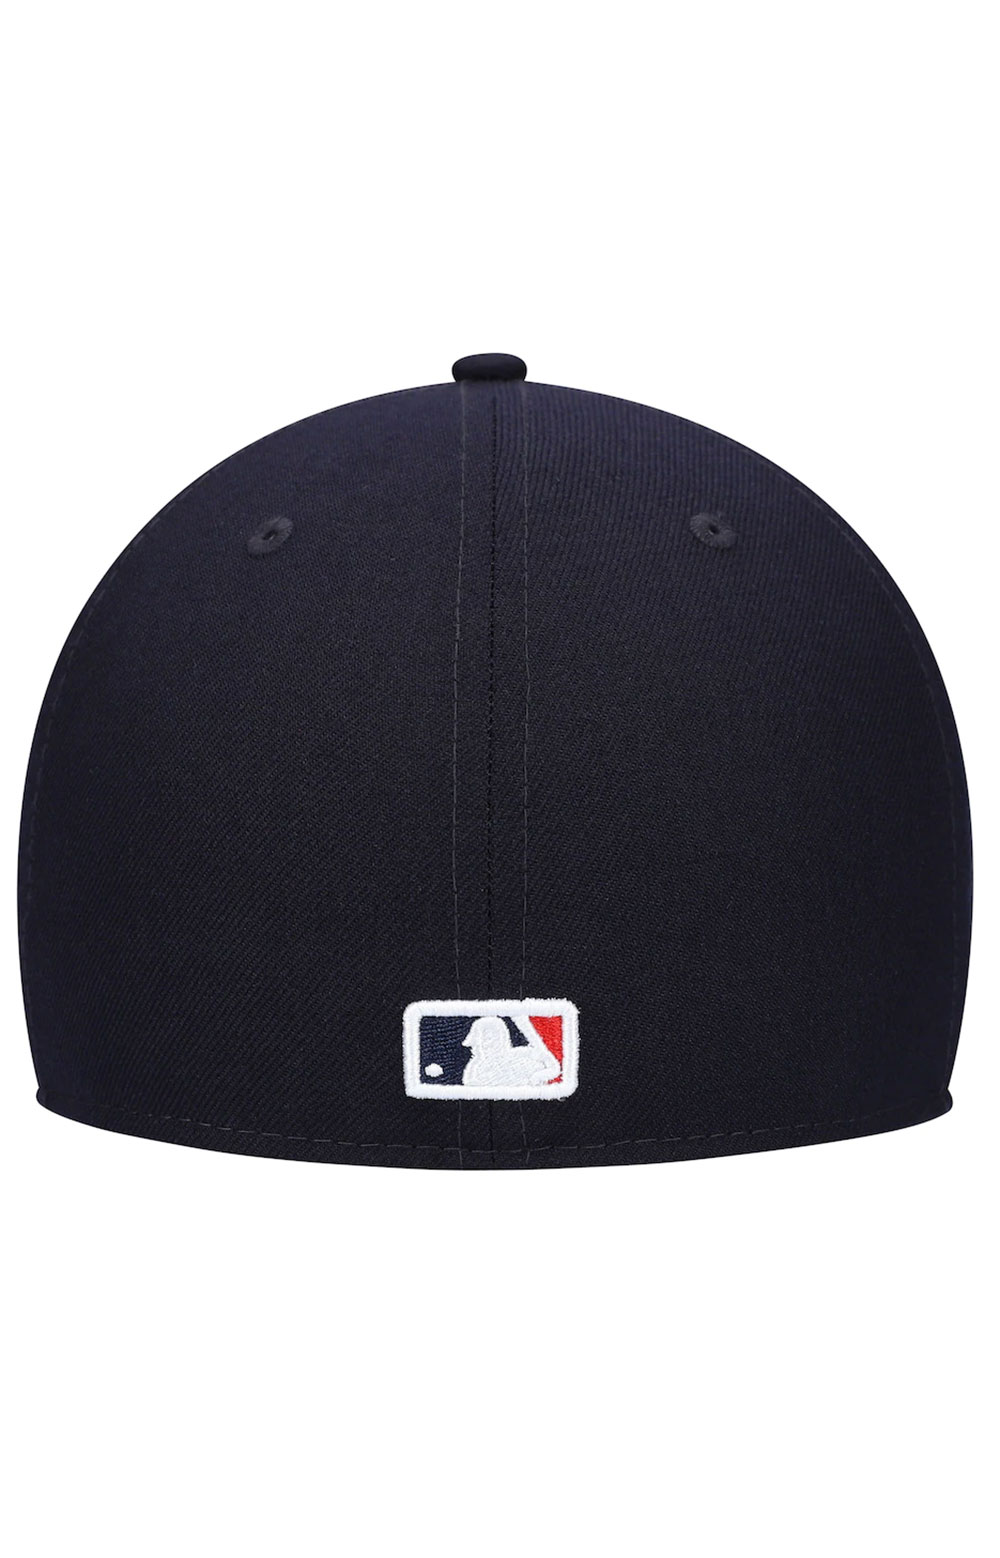 Boston Red Sox Upside Down Logo 59Fifty Fitted Hat - Navy 4